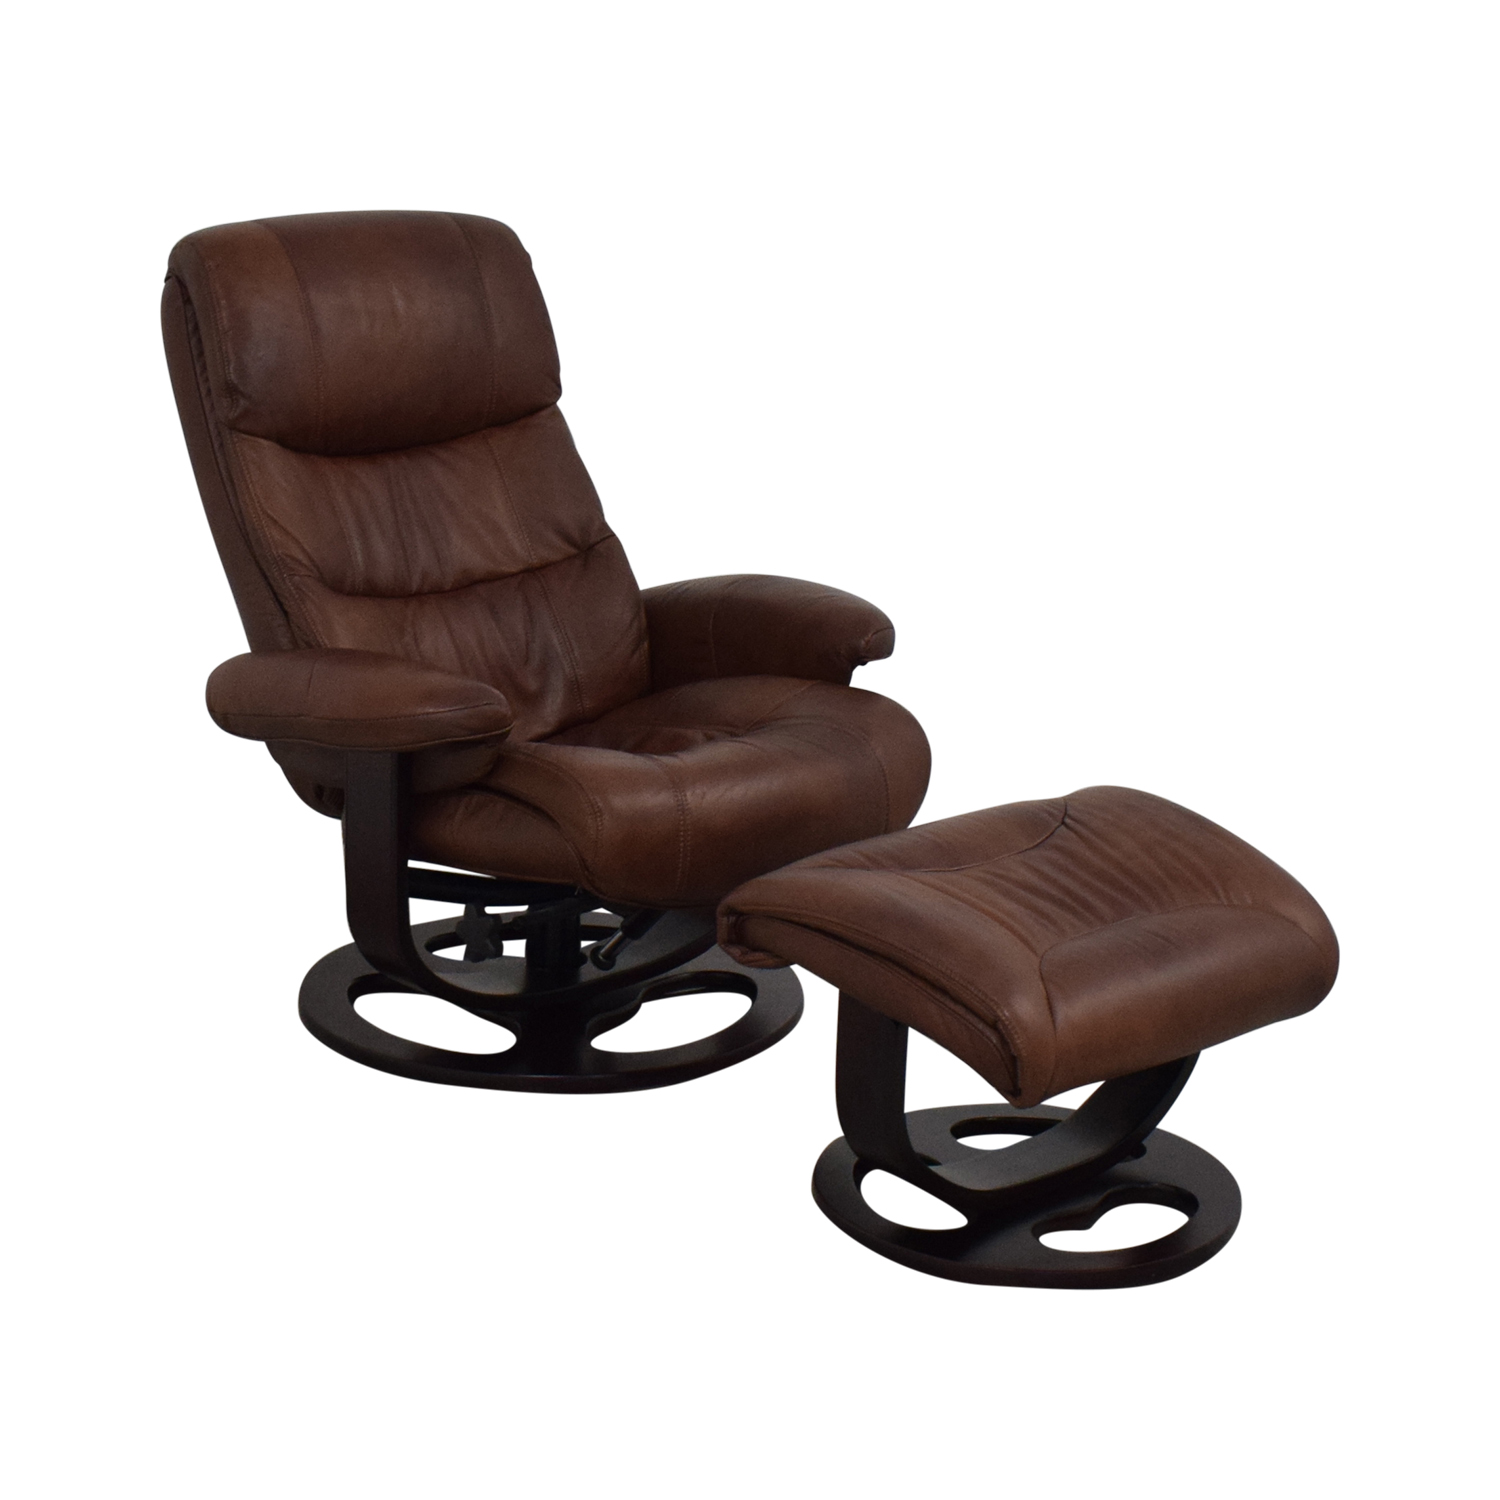 Lane Furniture Lane Furniture Recliner and Ottoman on sale